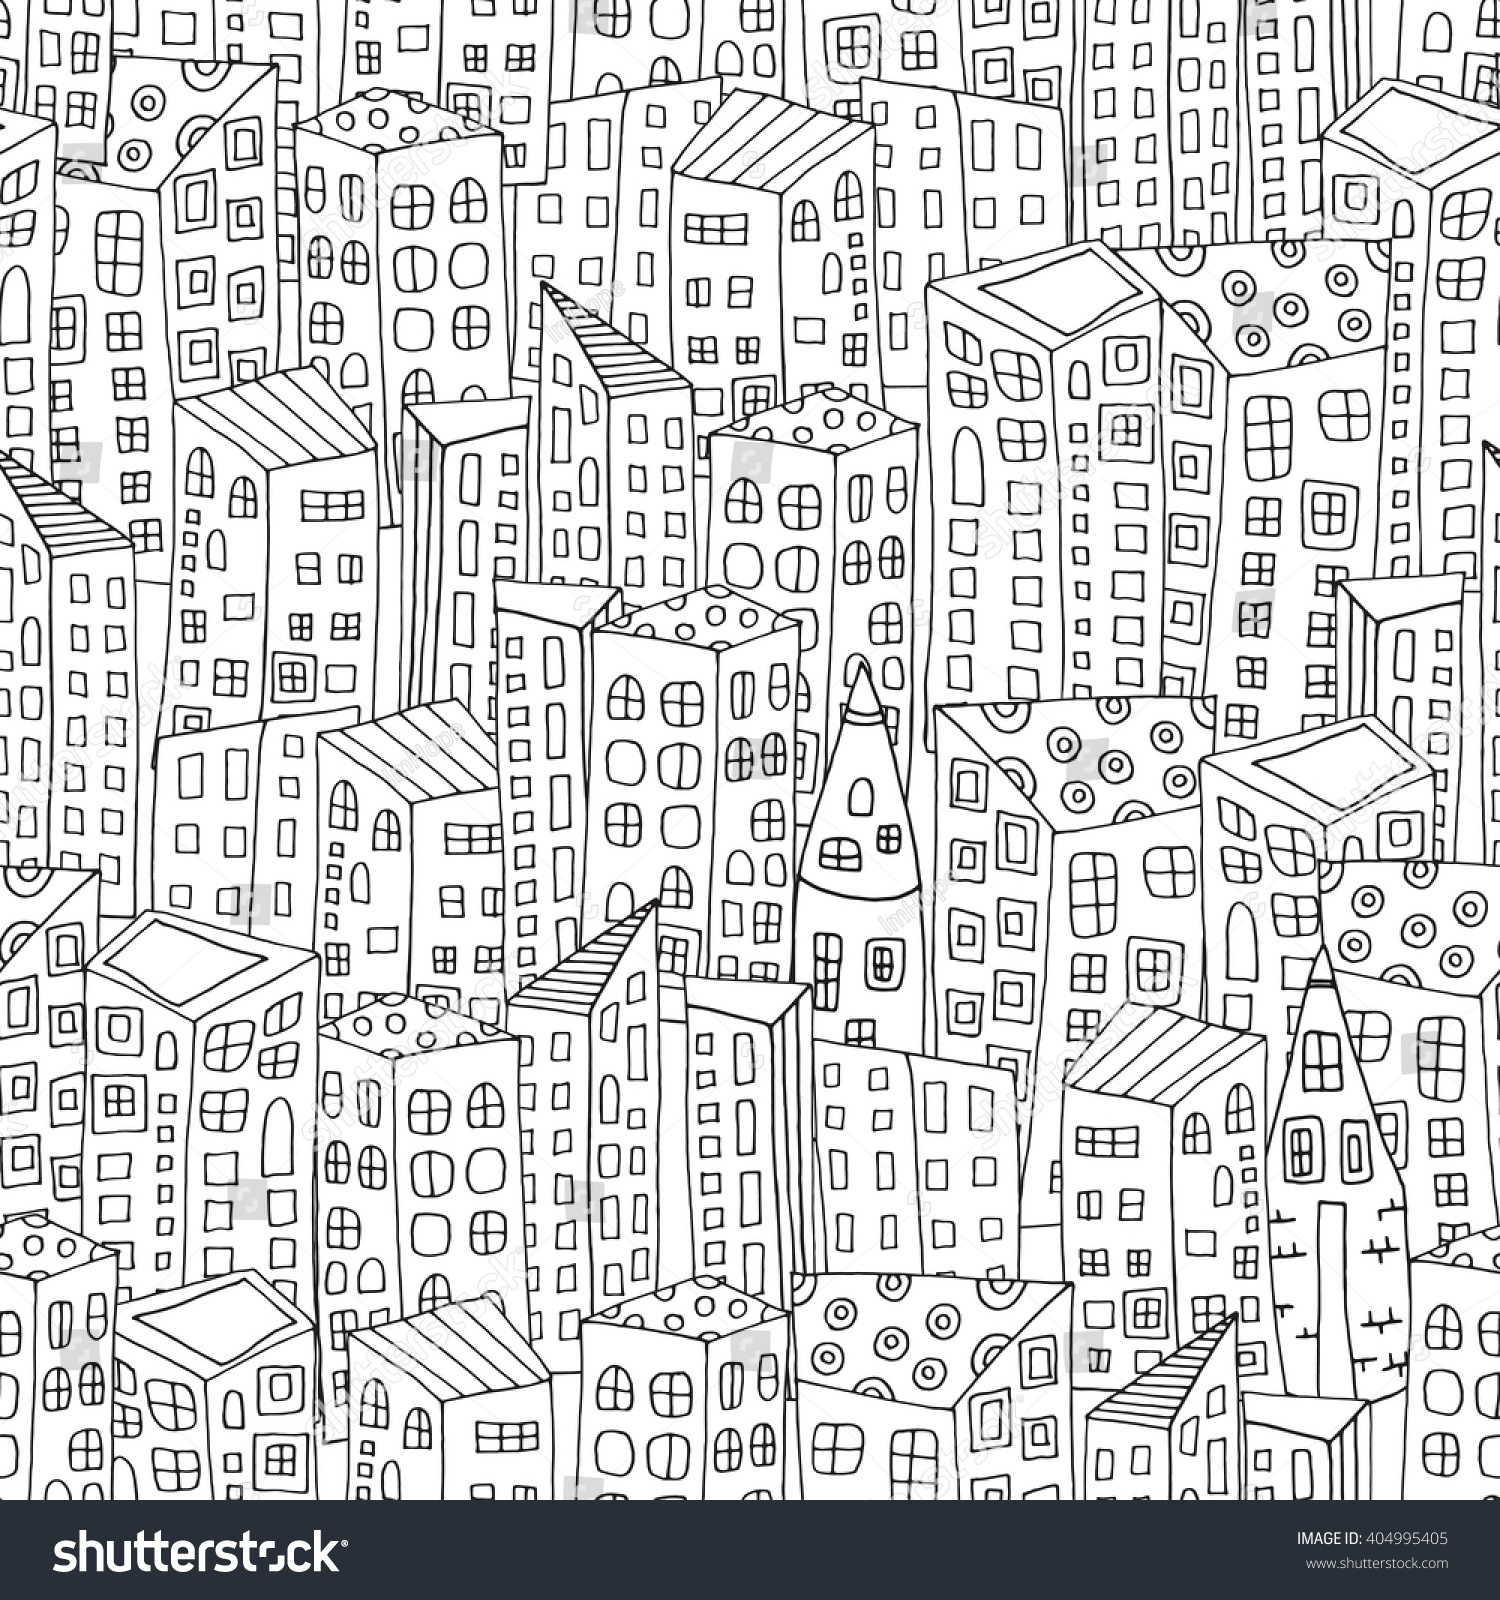 Th the magical city colouring in book - Seamless Pattern With Artistically City Houses Magic City Street Background Pattern For Coloring